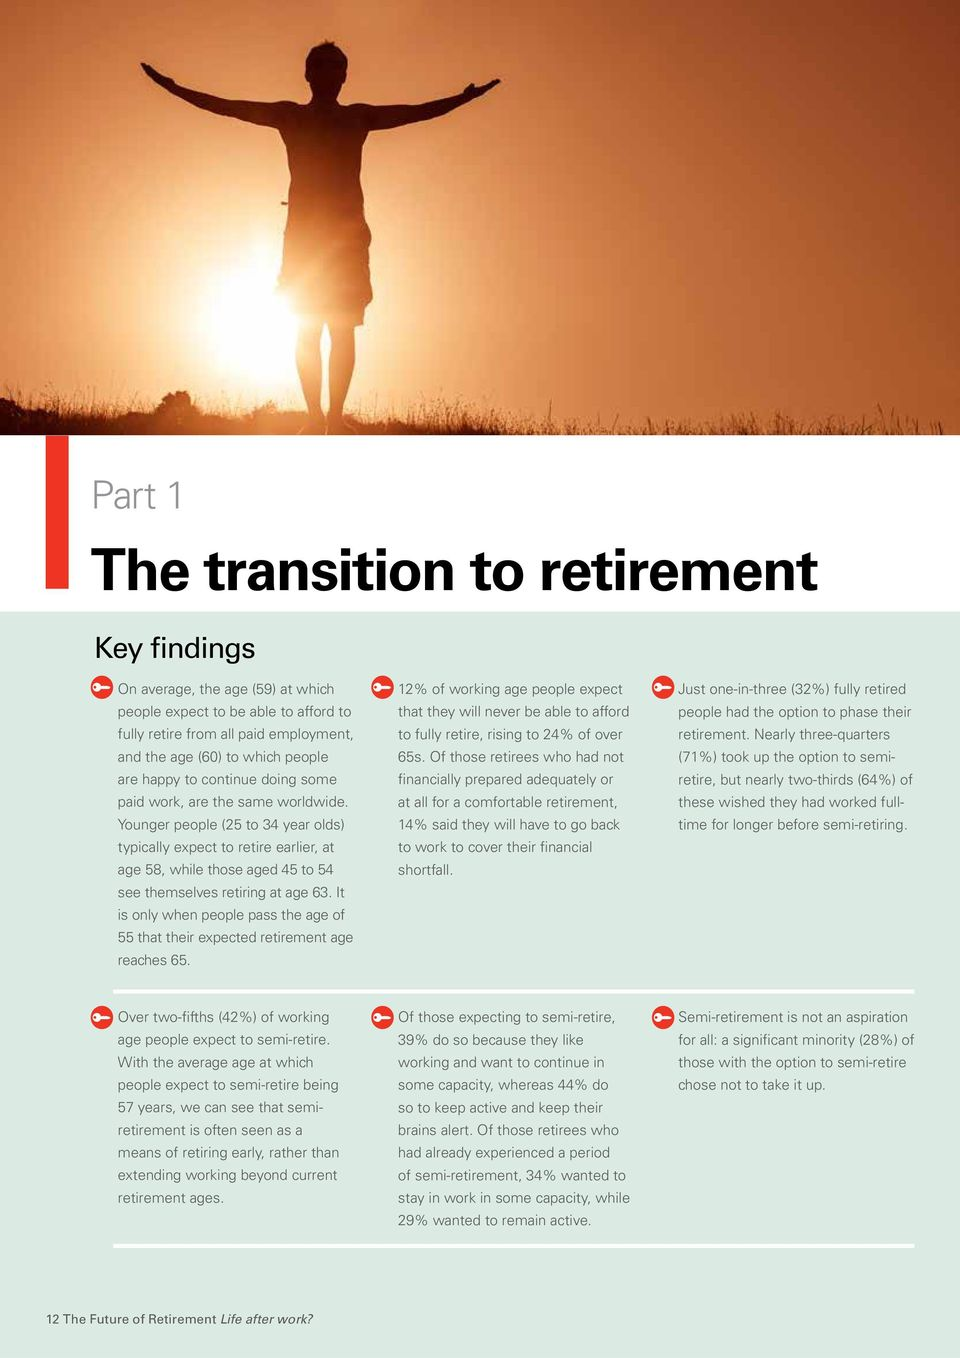 Younger people (25 to 34 year olds) typically expect to retire earlier, at age 58, while those aged 45 to 54 see themselves retiring at age 63.